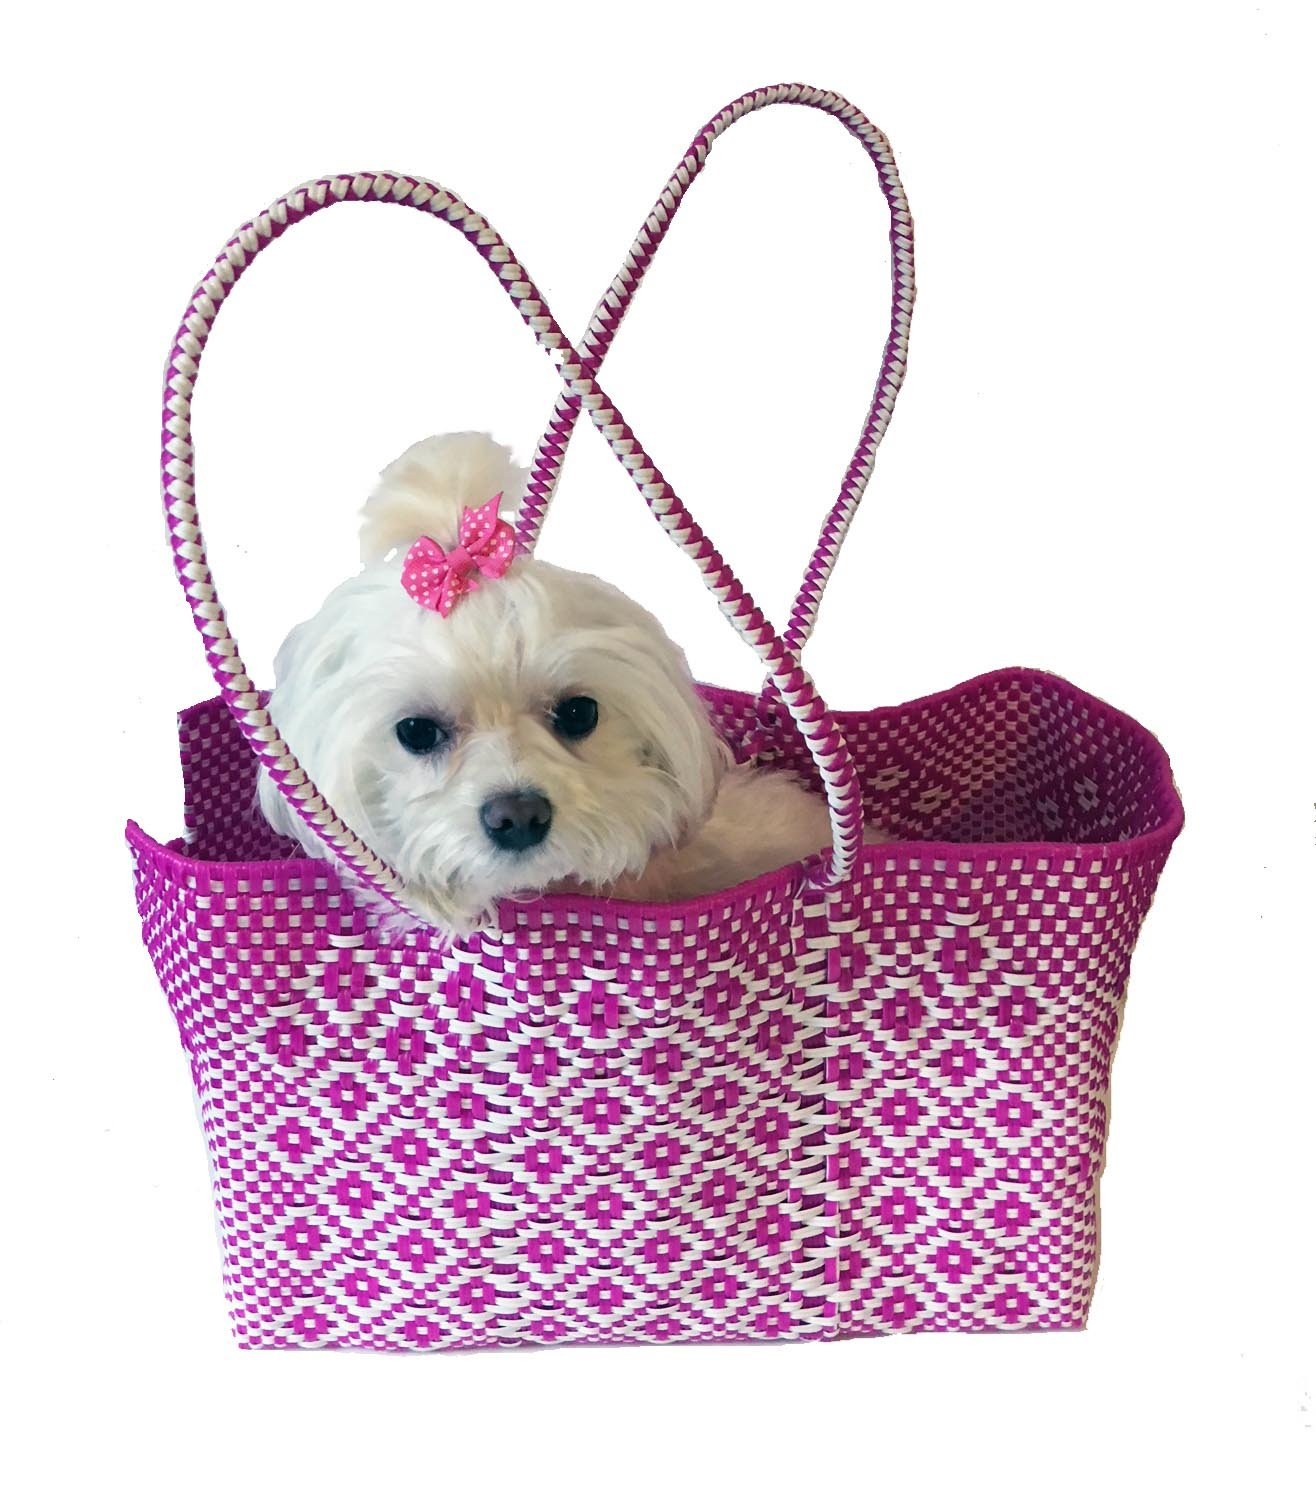 Dog Totes and Carriers